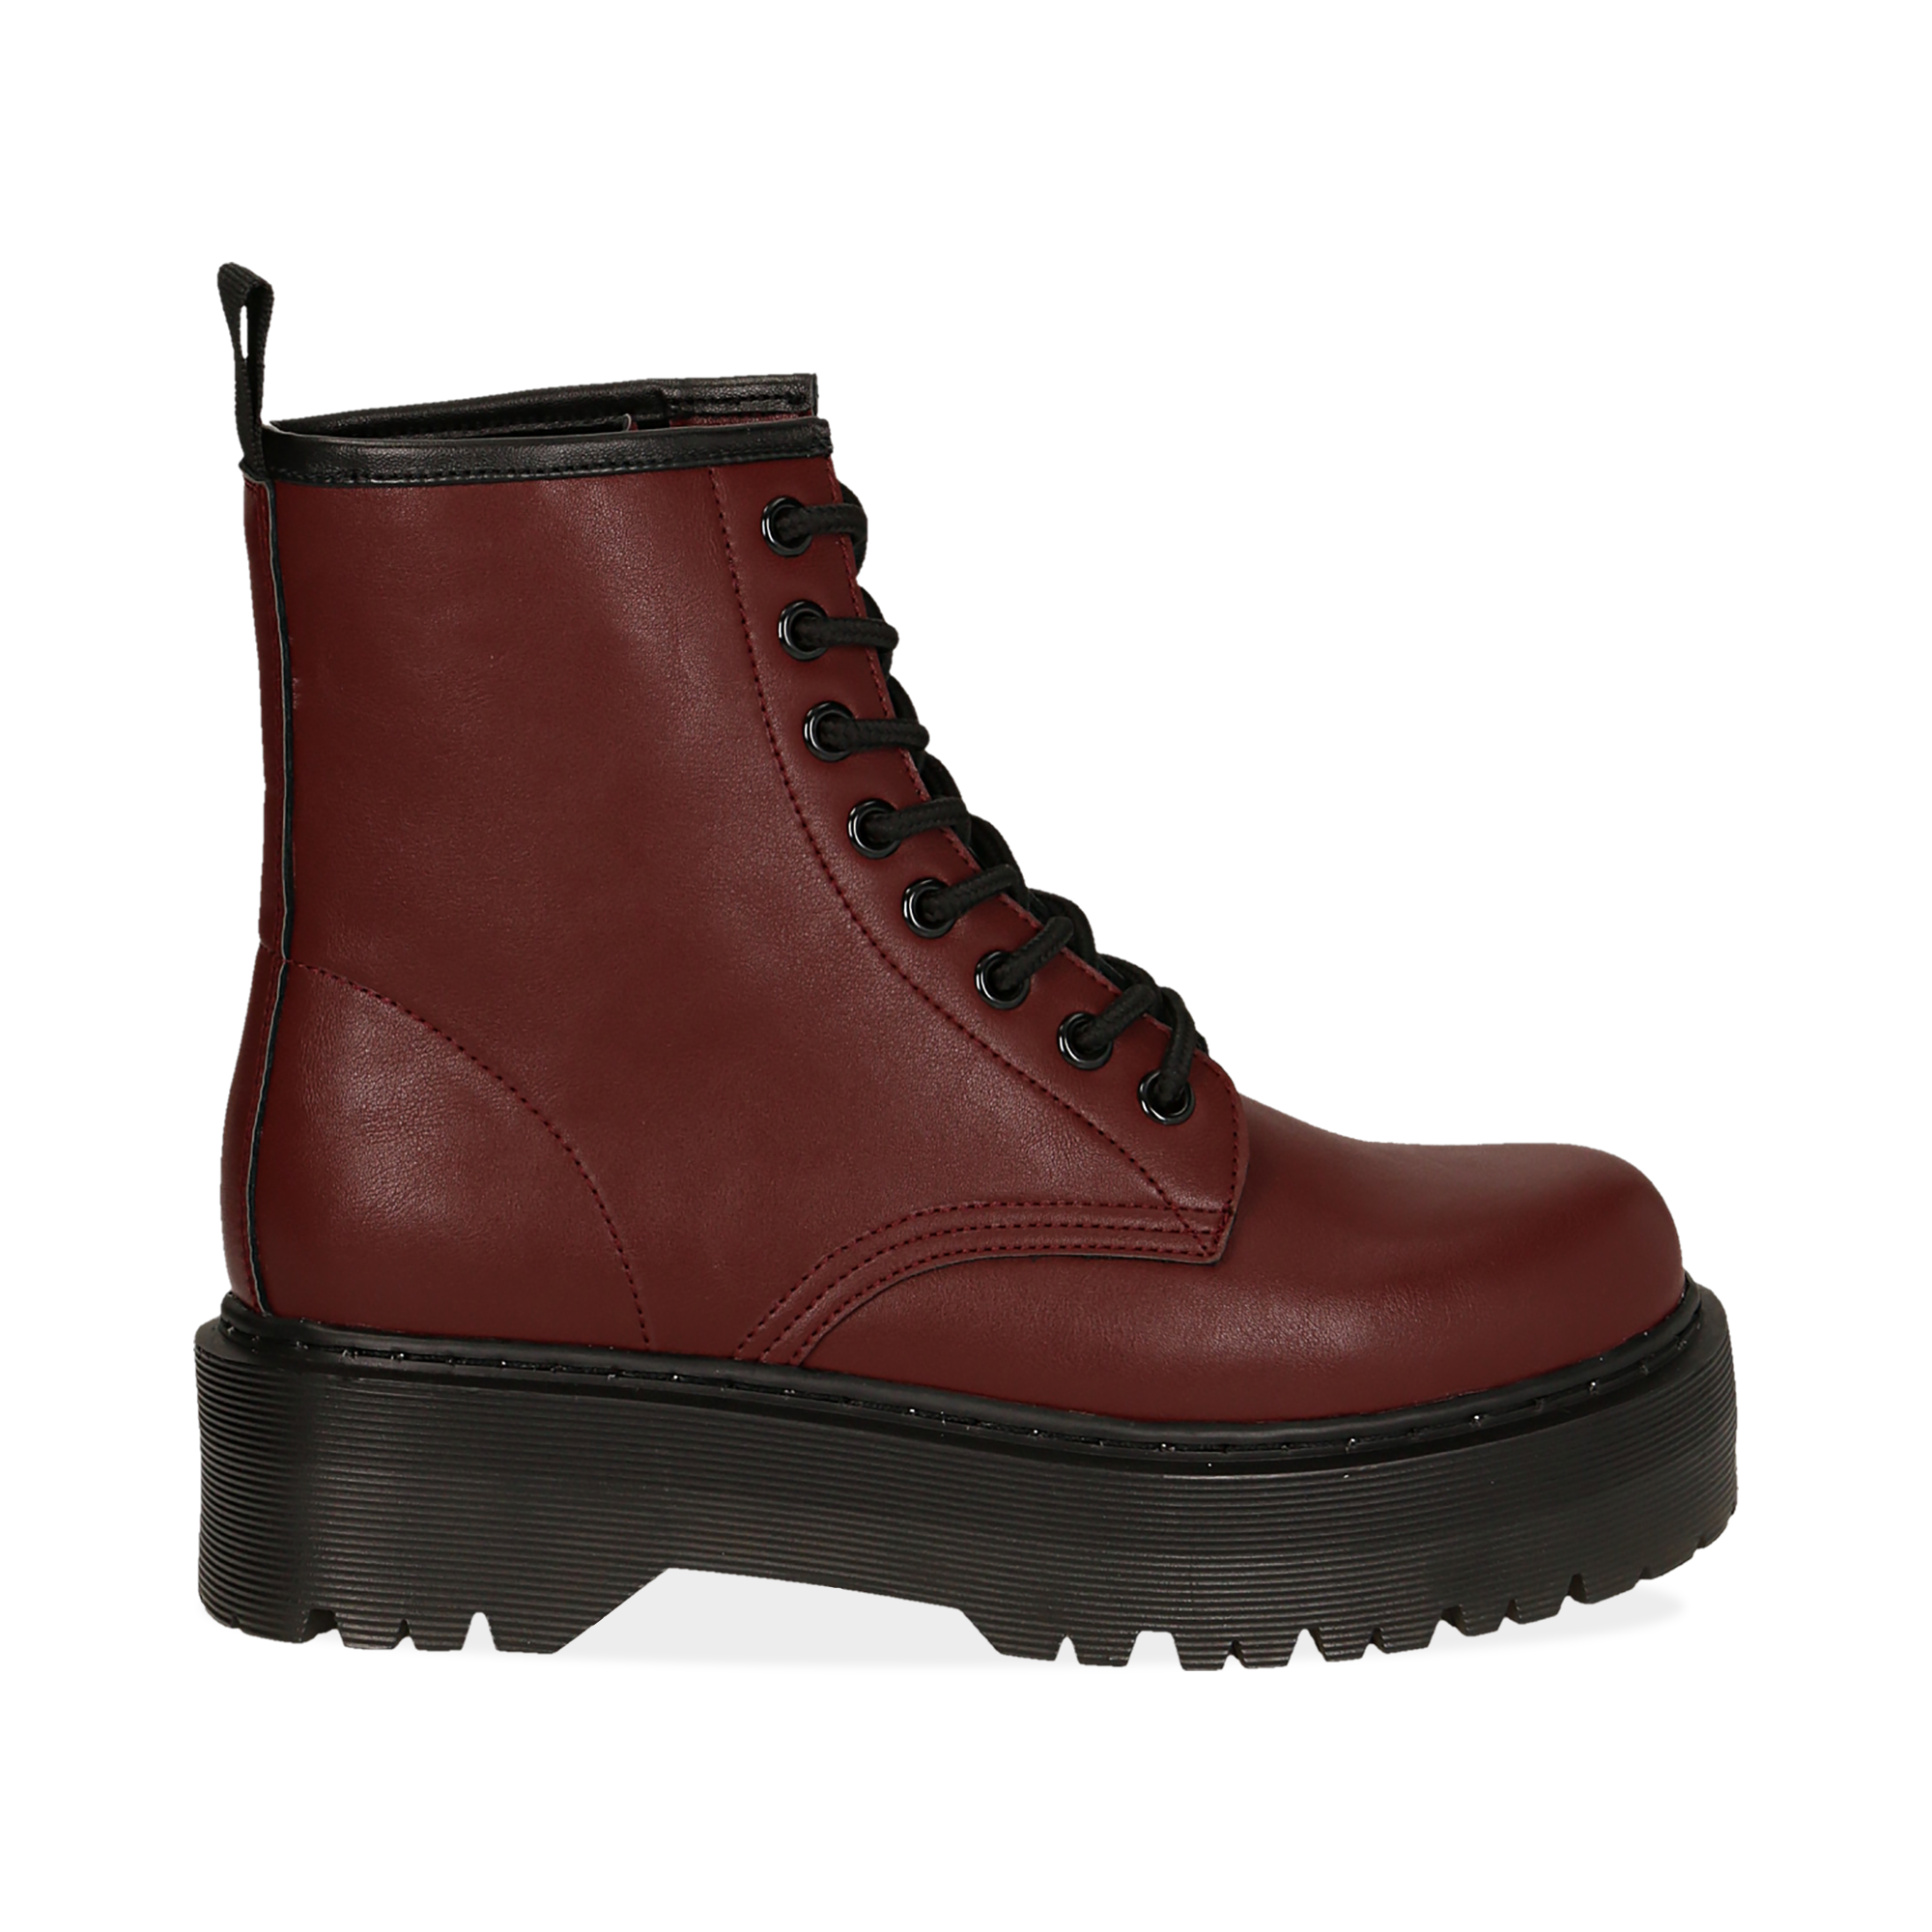 Botas militares en color bordeaux